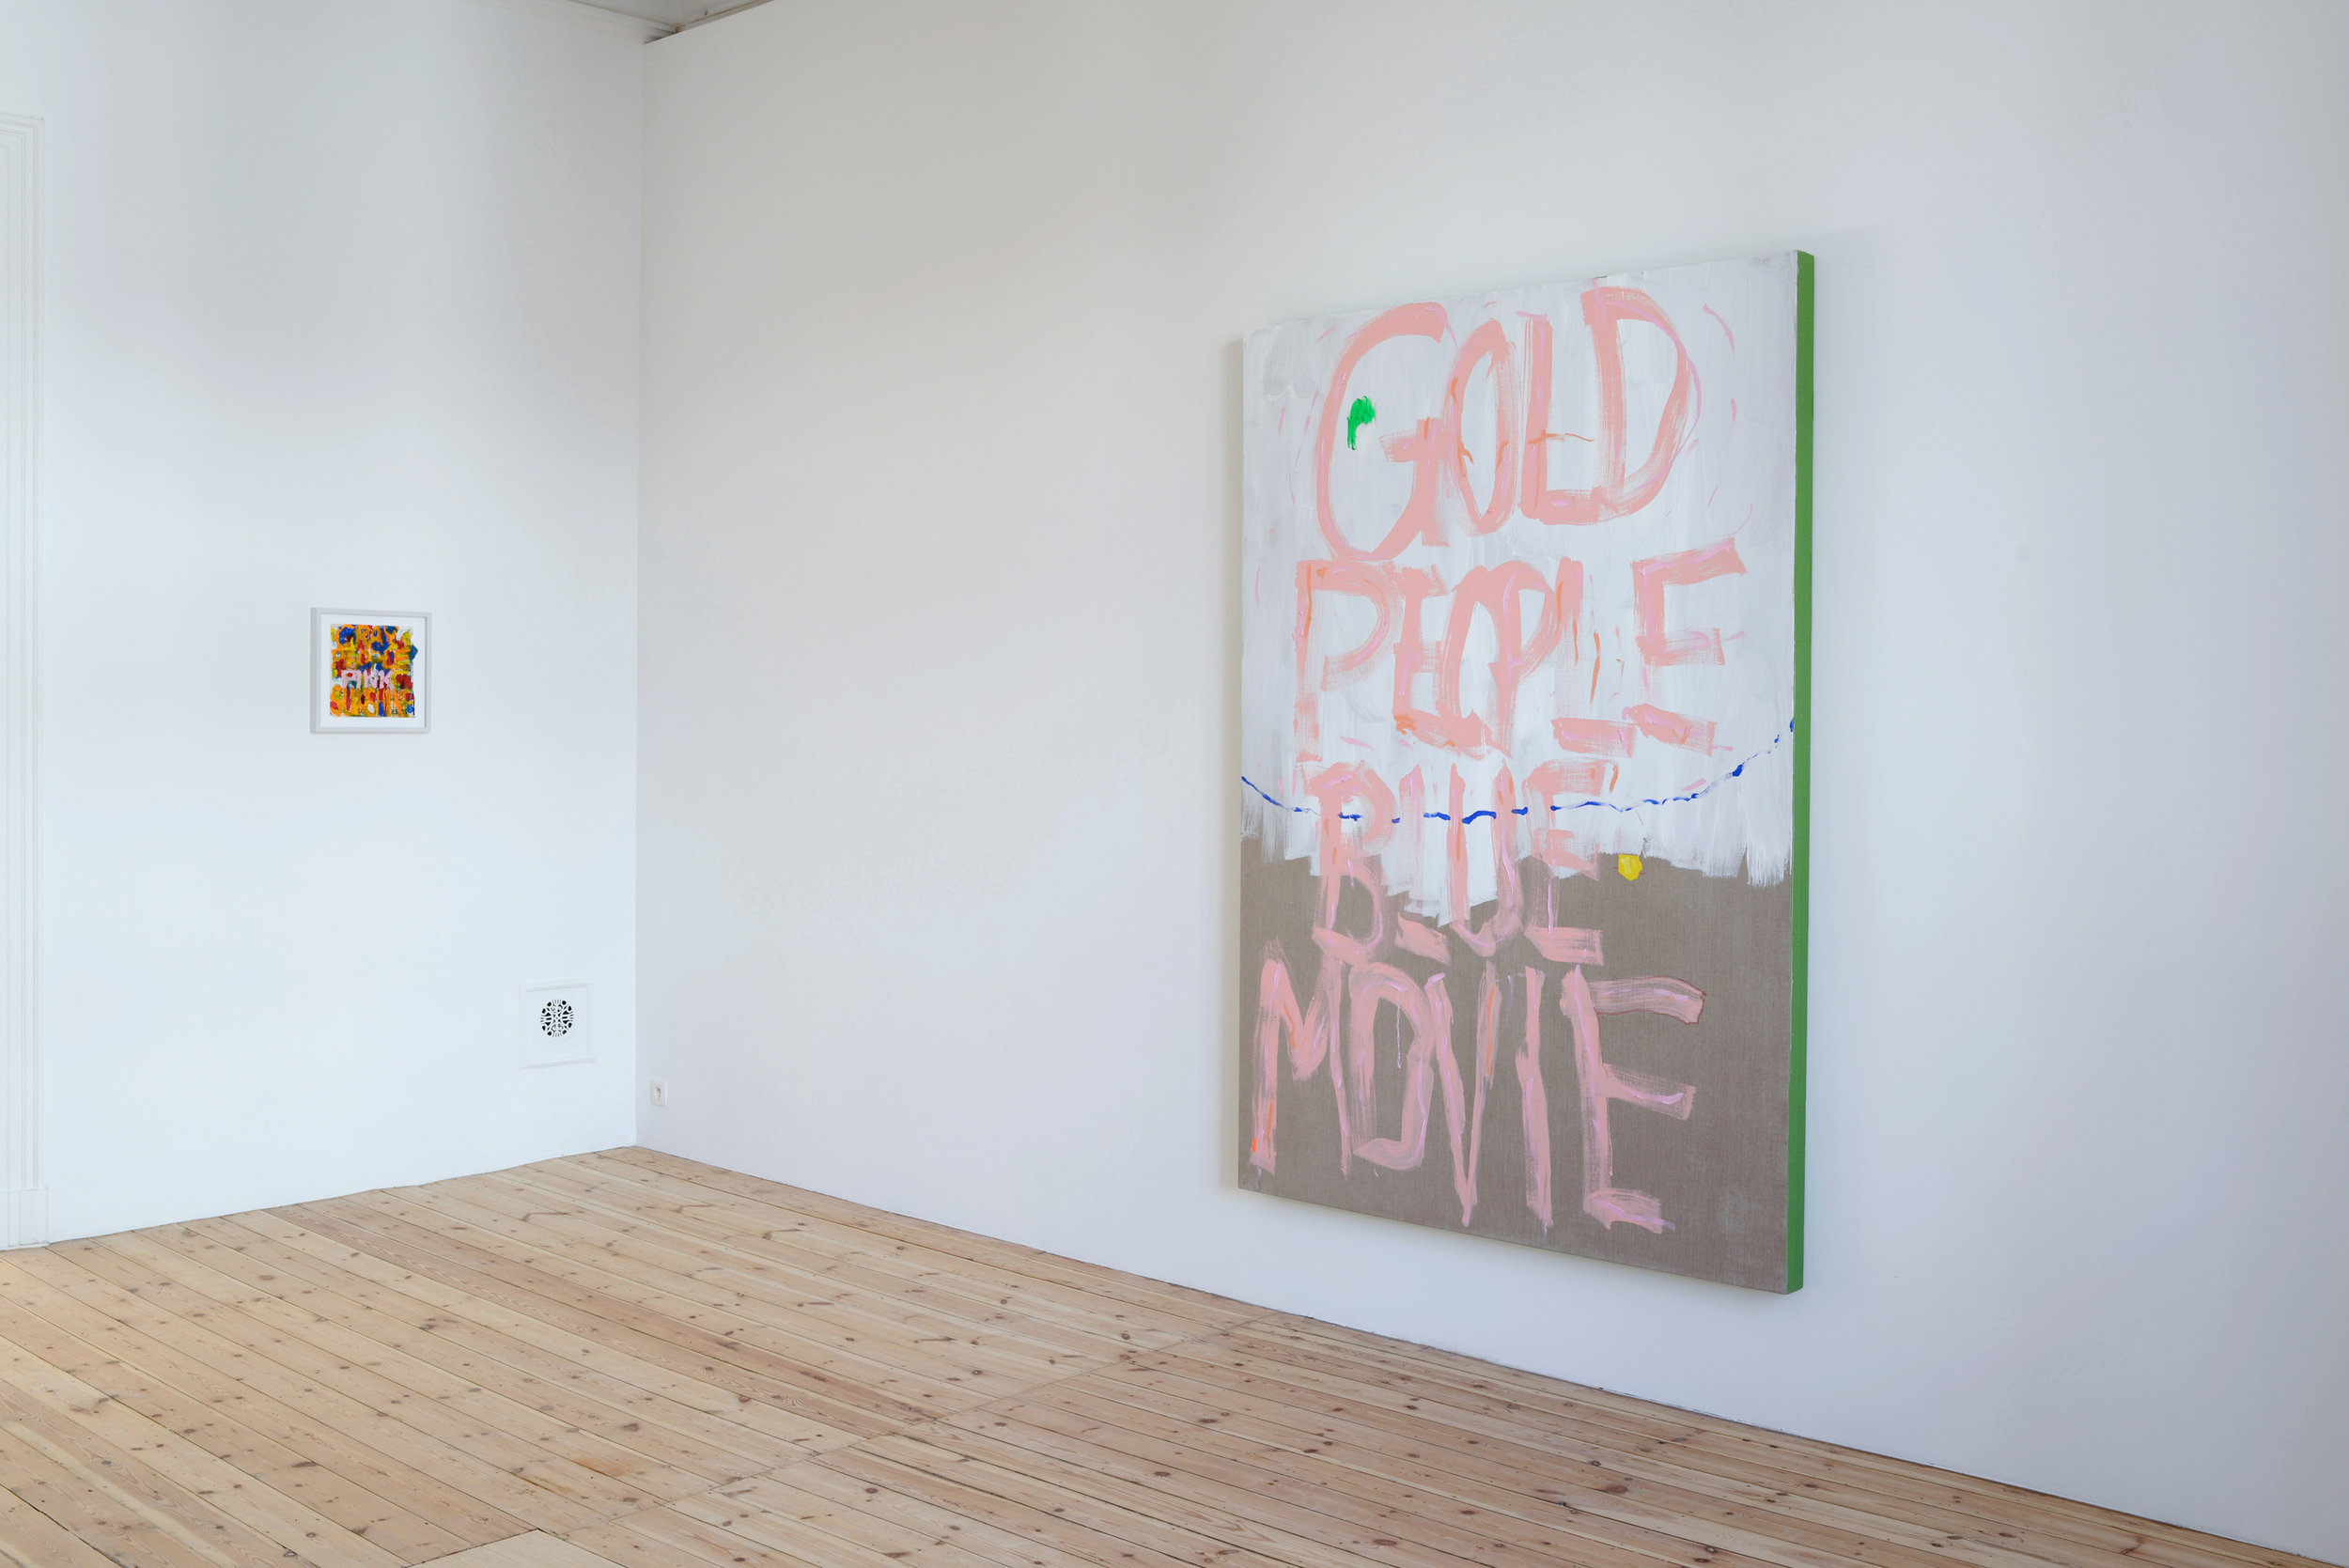 Gold People Shit In Their Valet,  Catherine Bastide gallery, Brussels, 2014, installation view. Photo: Isabelle Arthuis.